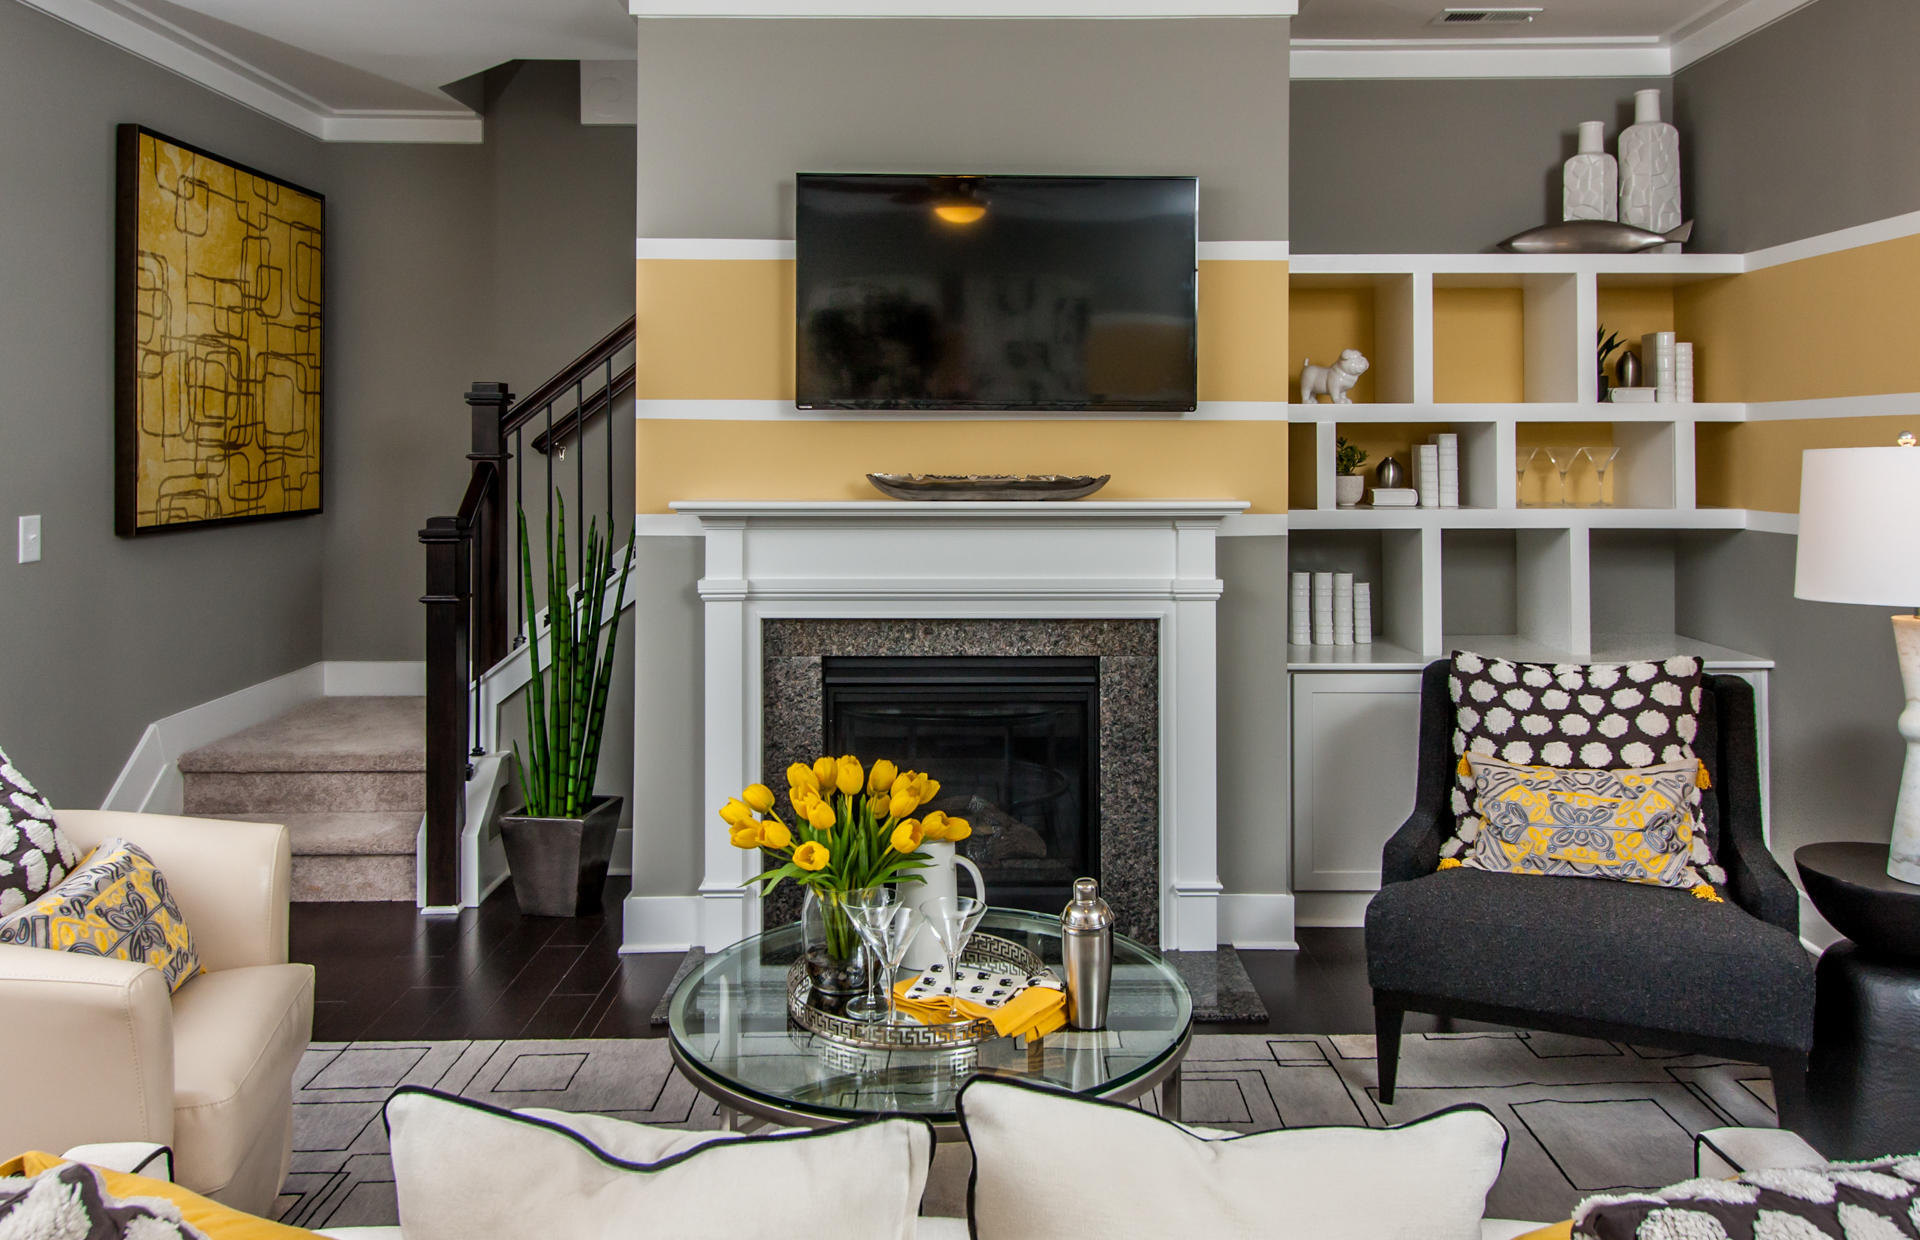 Southpoint Townes by Pulte Homes image 0